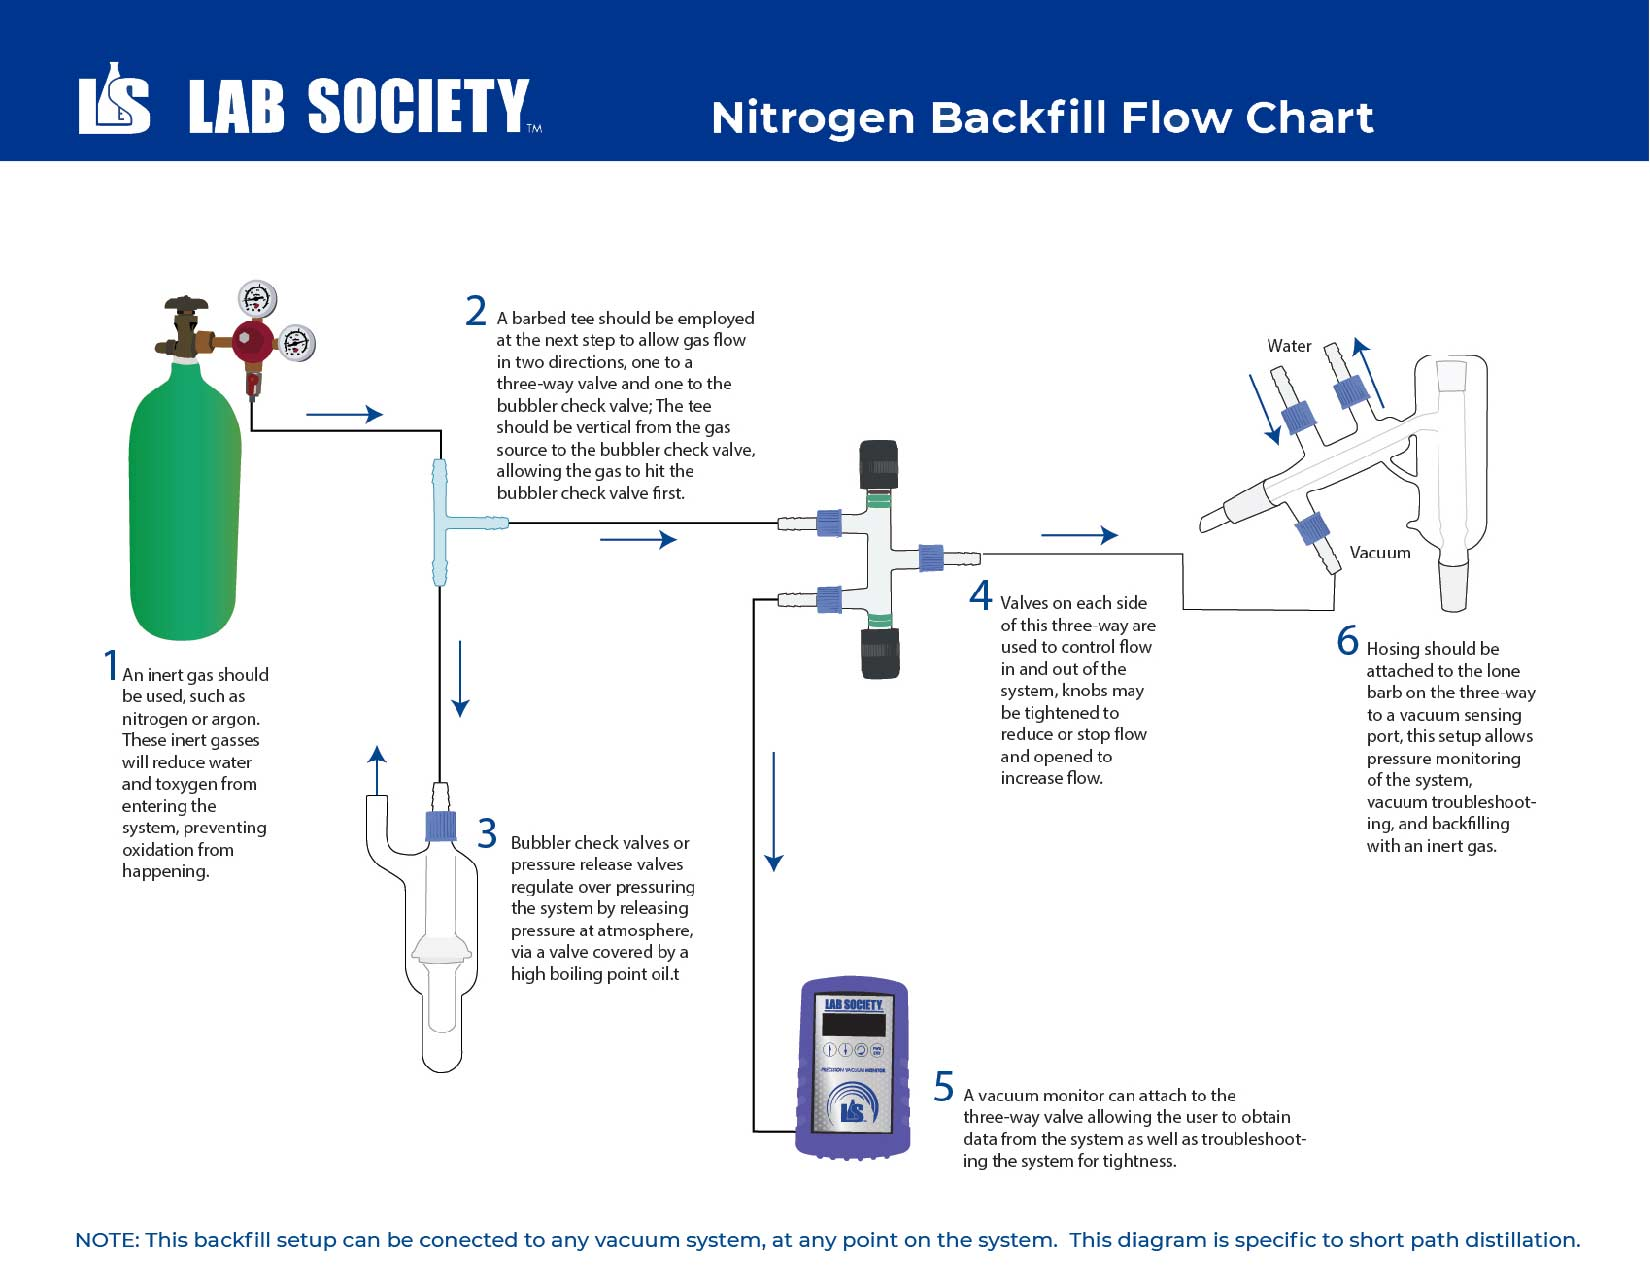 How to Backfill Your System with Inert Gas [Flowchart] - Lab